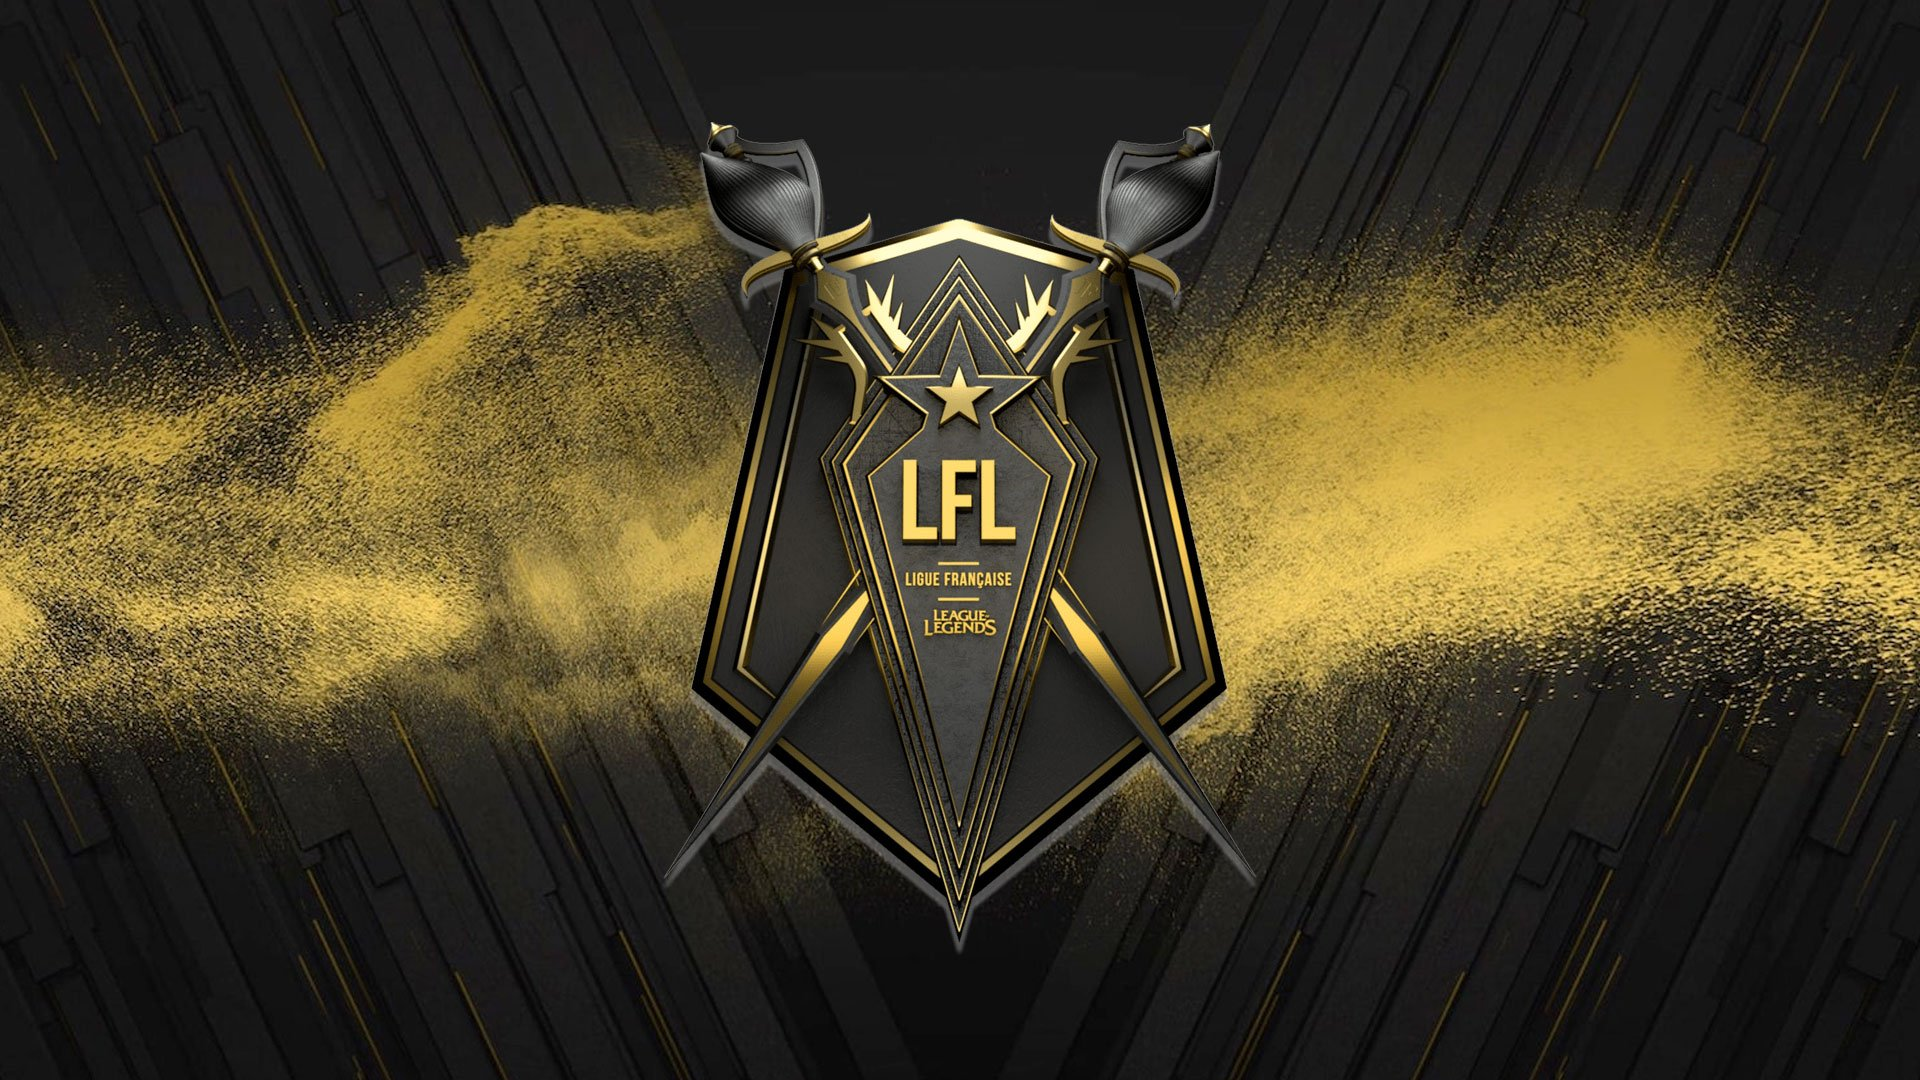 La LFL, Ligue française de League of Legends !